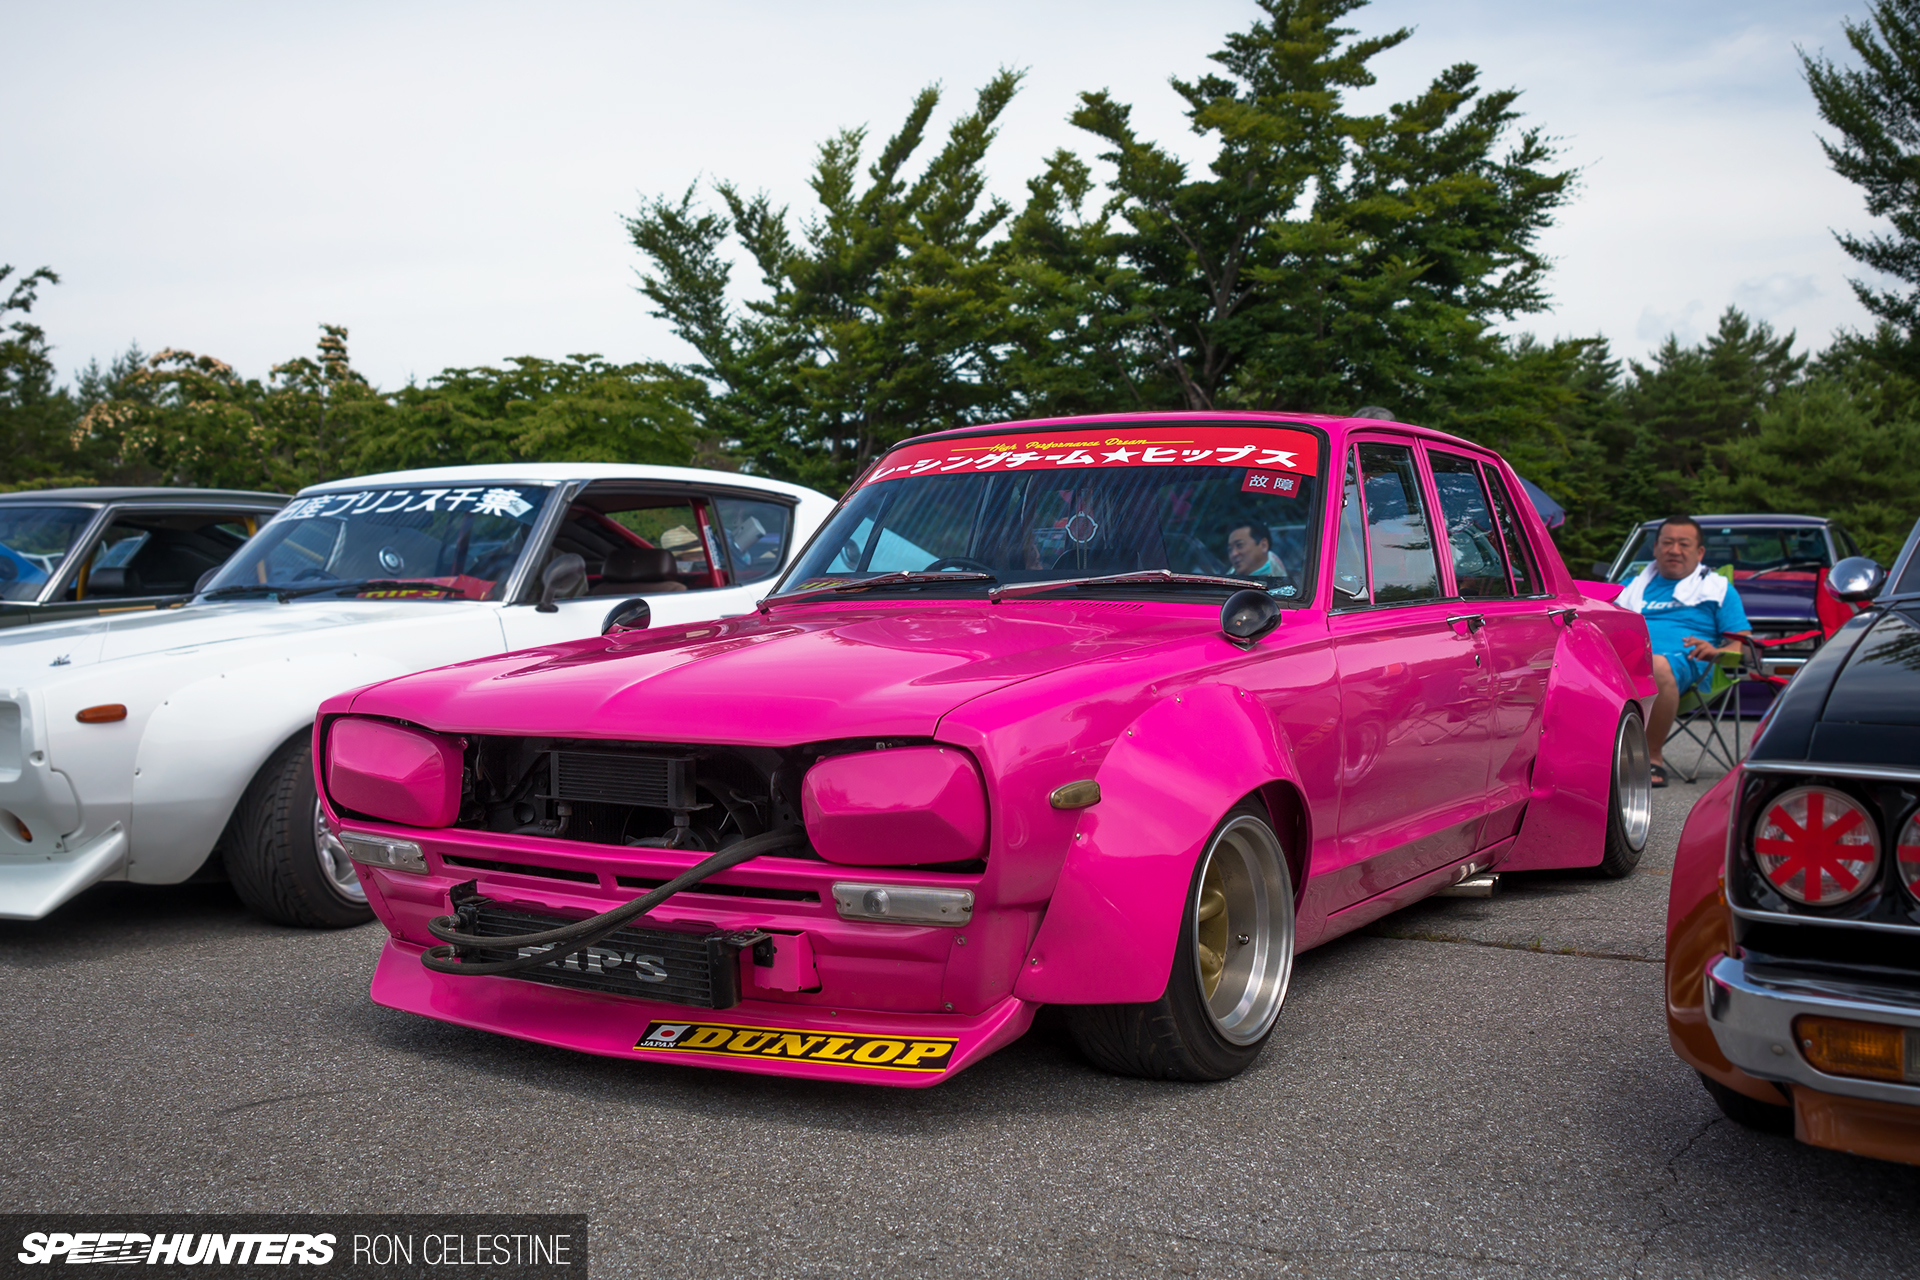 The Pink Menace A Bosozoku Skyline Speedhunters